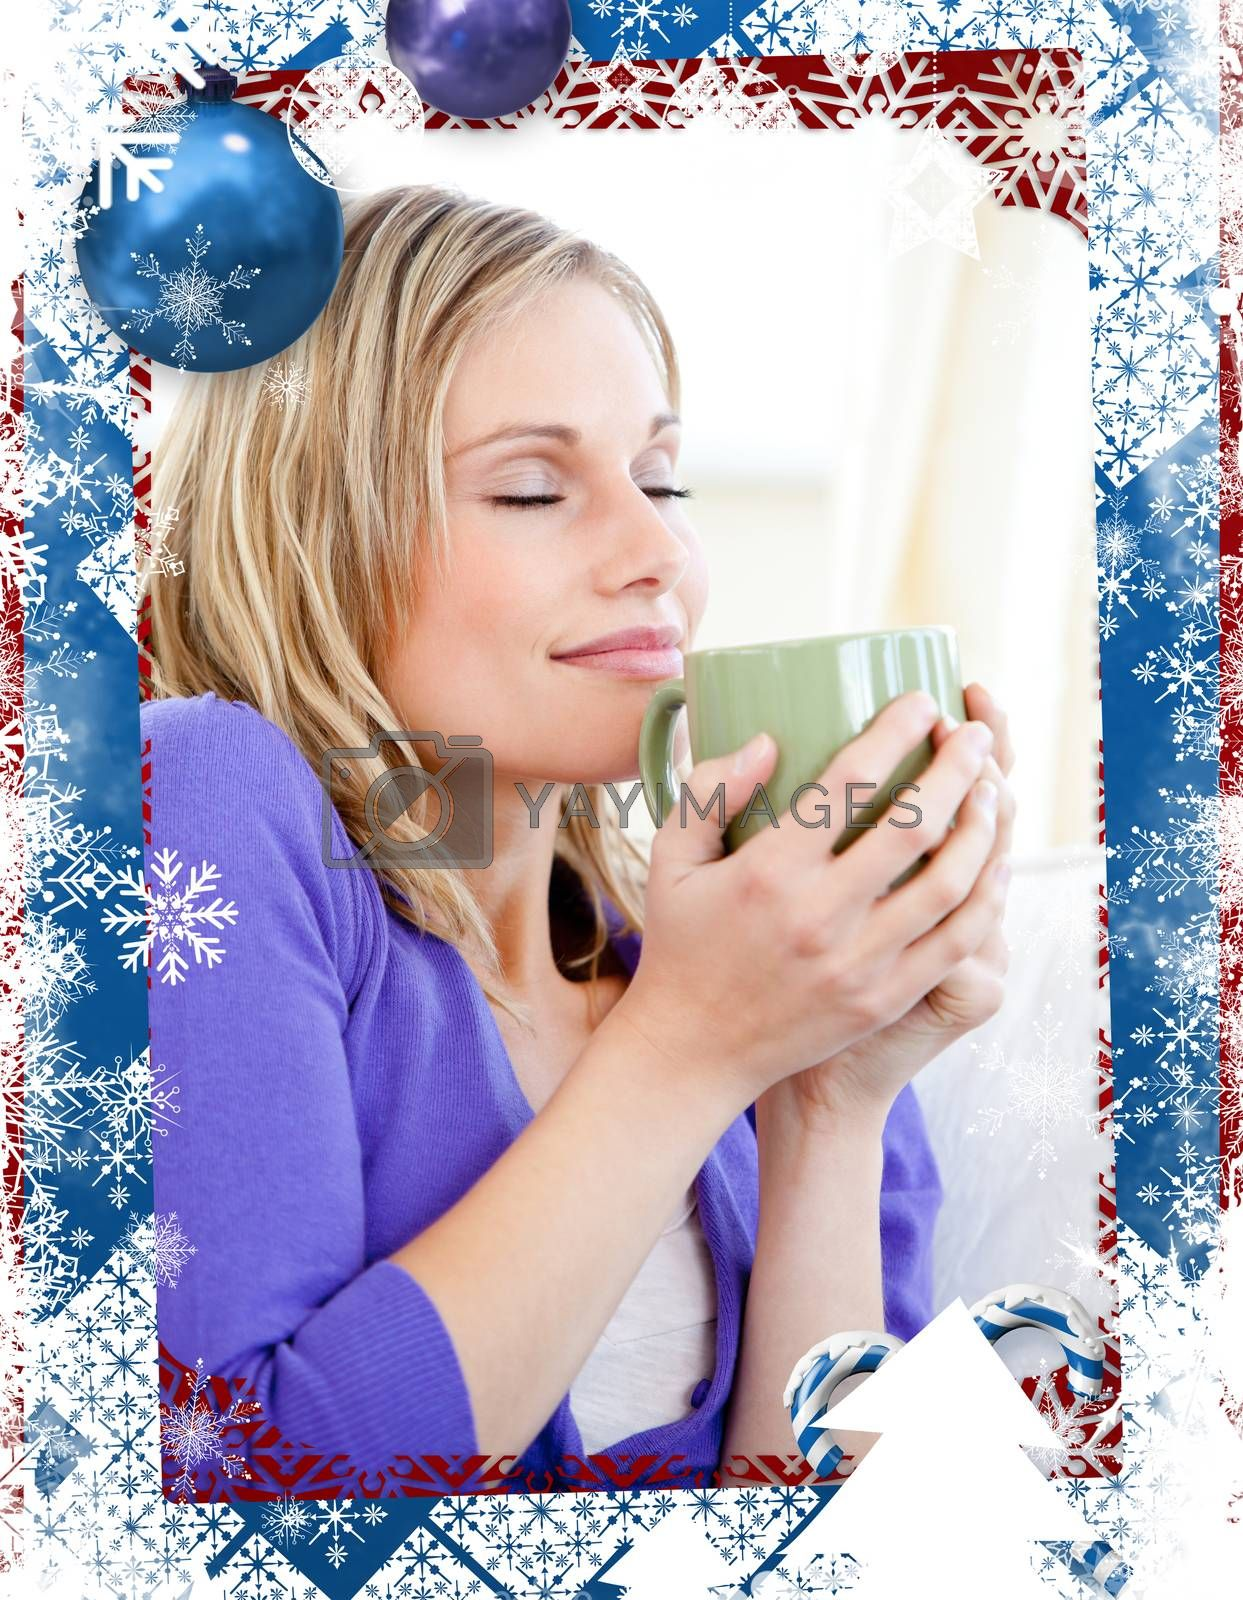 Glowing woman holding a cup of coffee against christmas themed frame